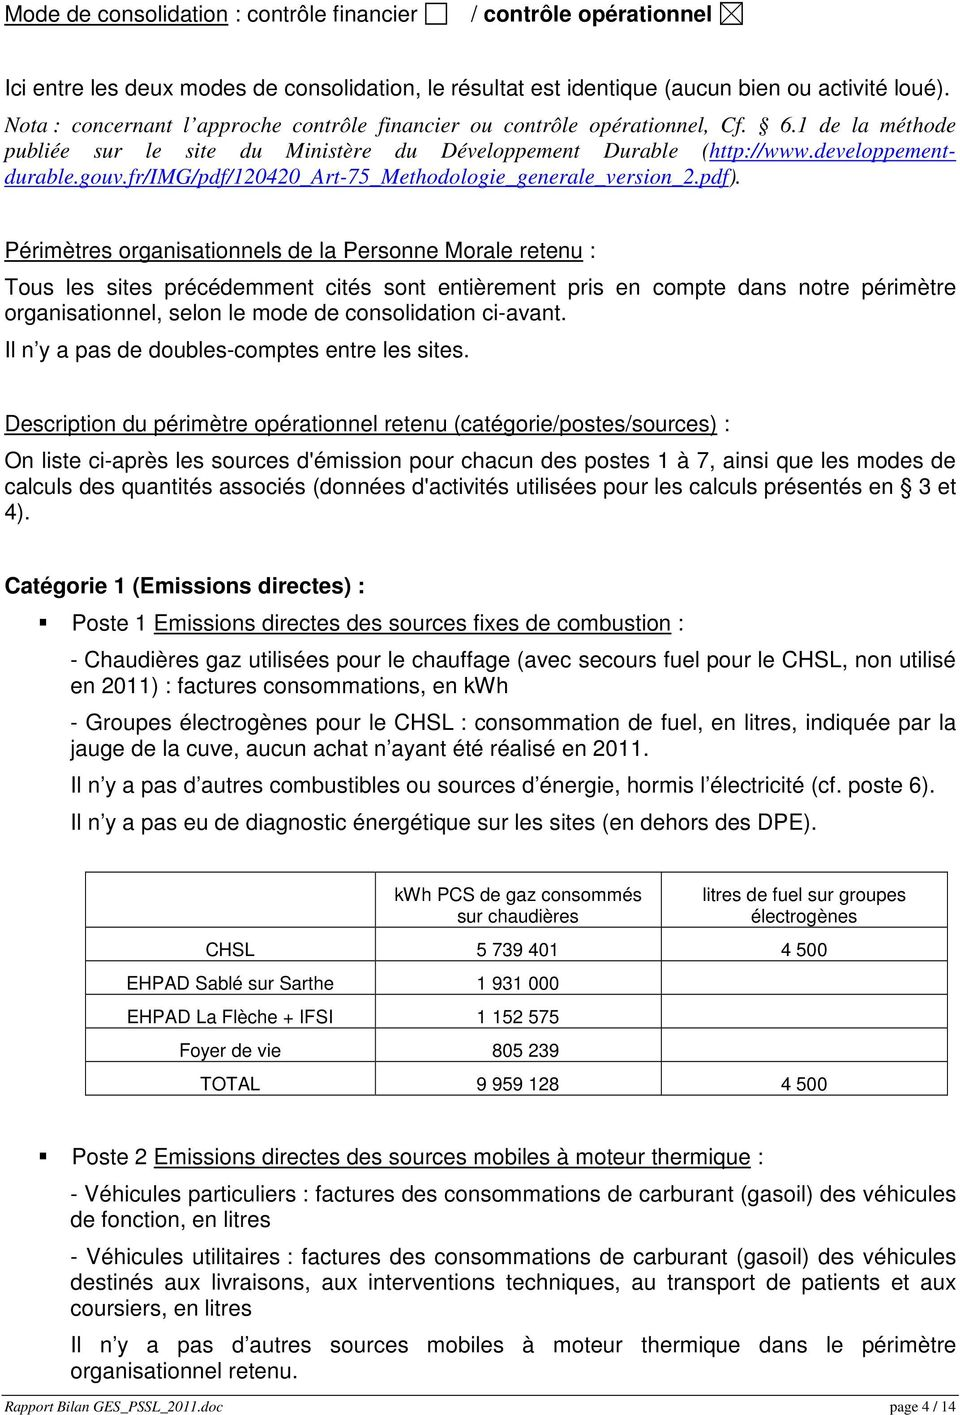 fr/img/pdf/120420_art-75_methodologie_generale_version_2.pdf).